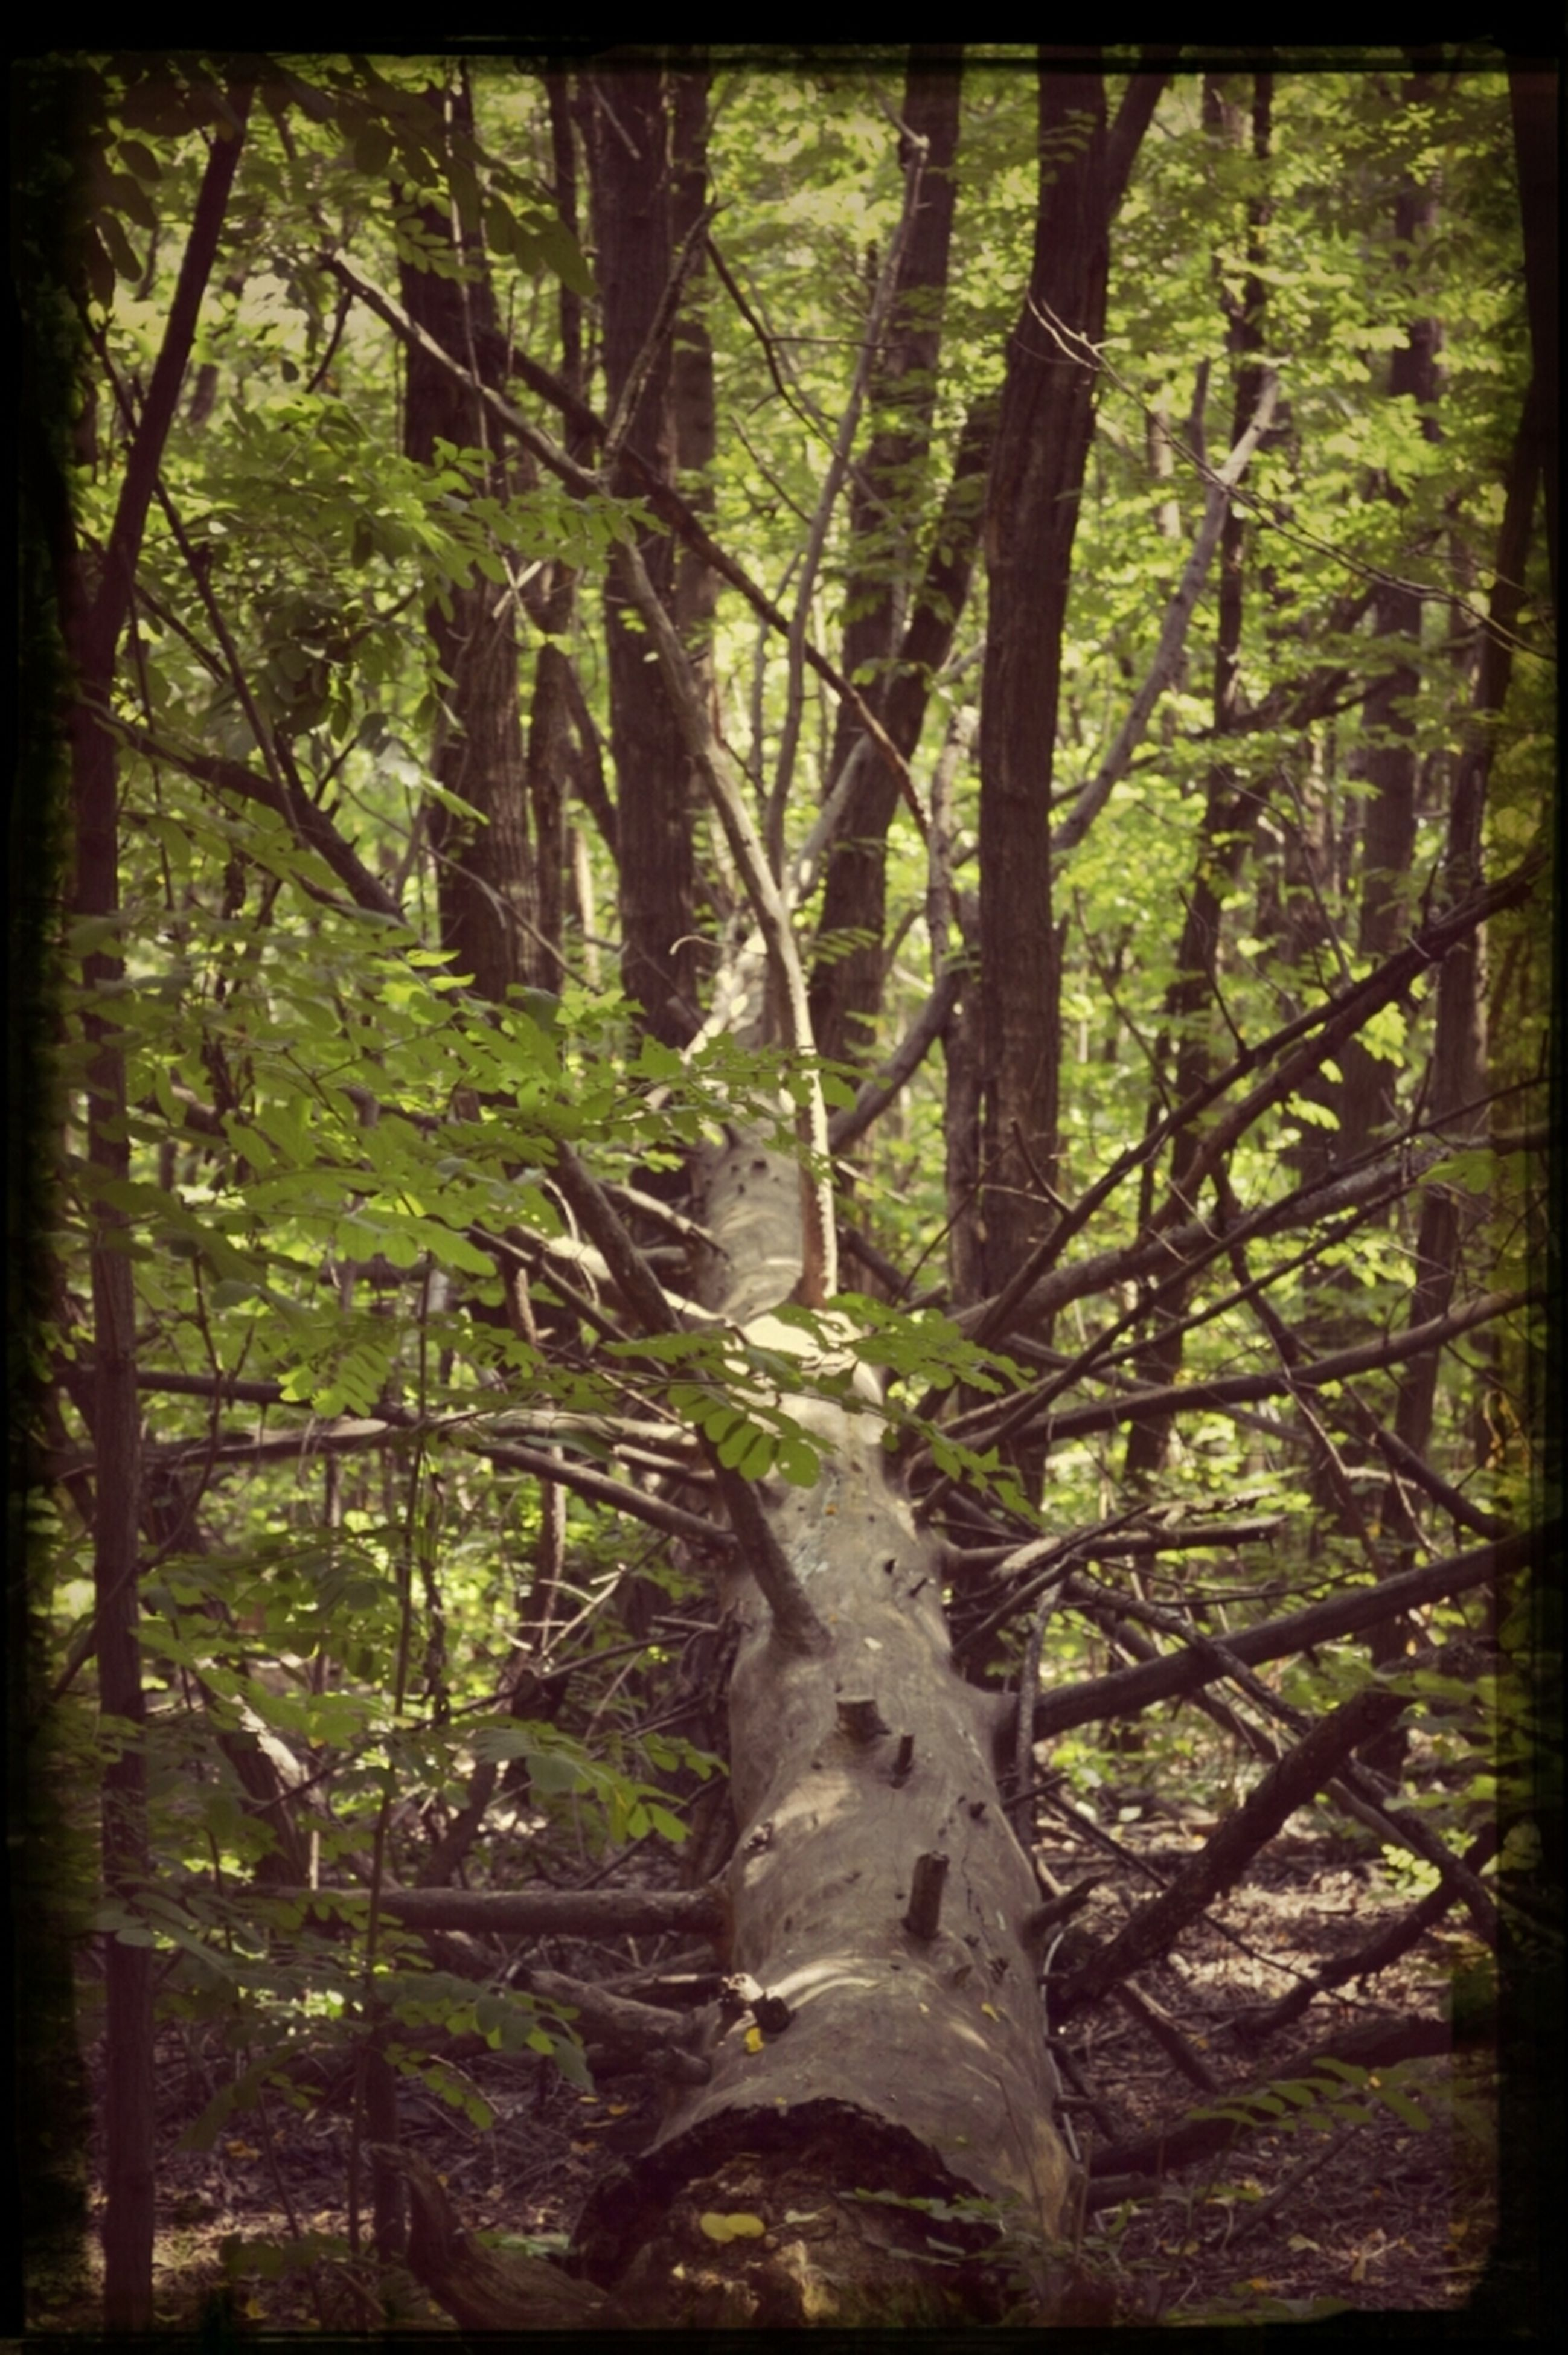 tree, tree trunk, forest, growth, transfer print, tranquility, woodland, branch, nature, auto post production filter, tranquil scene, beauty in nature, green color, day, scenics, outdoors, no people, non-urban scene, woods, sunlight